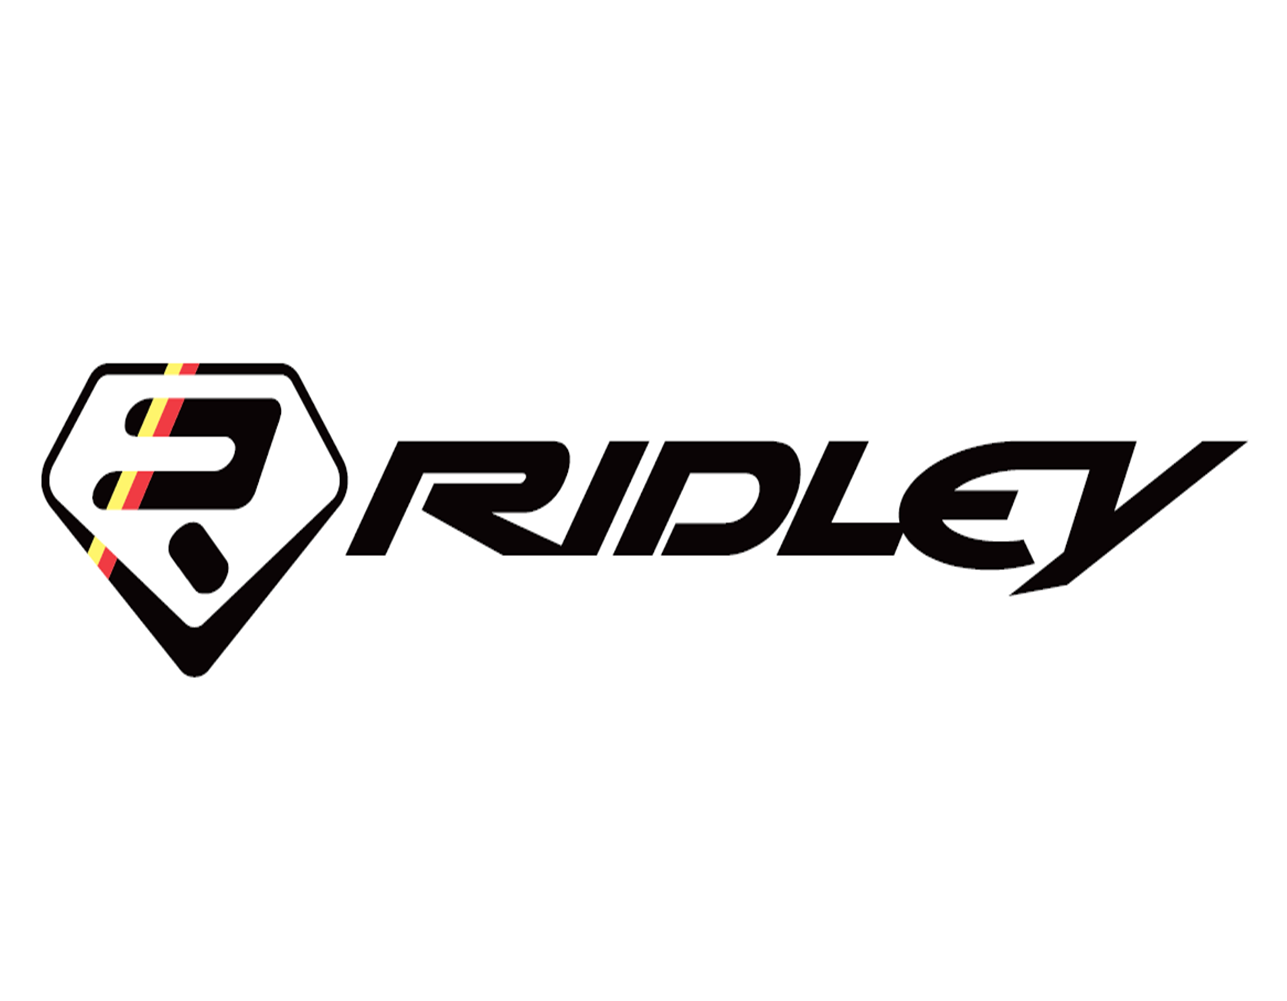 Ridley Logo Wallpaper